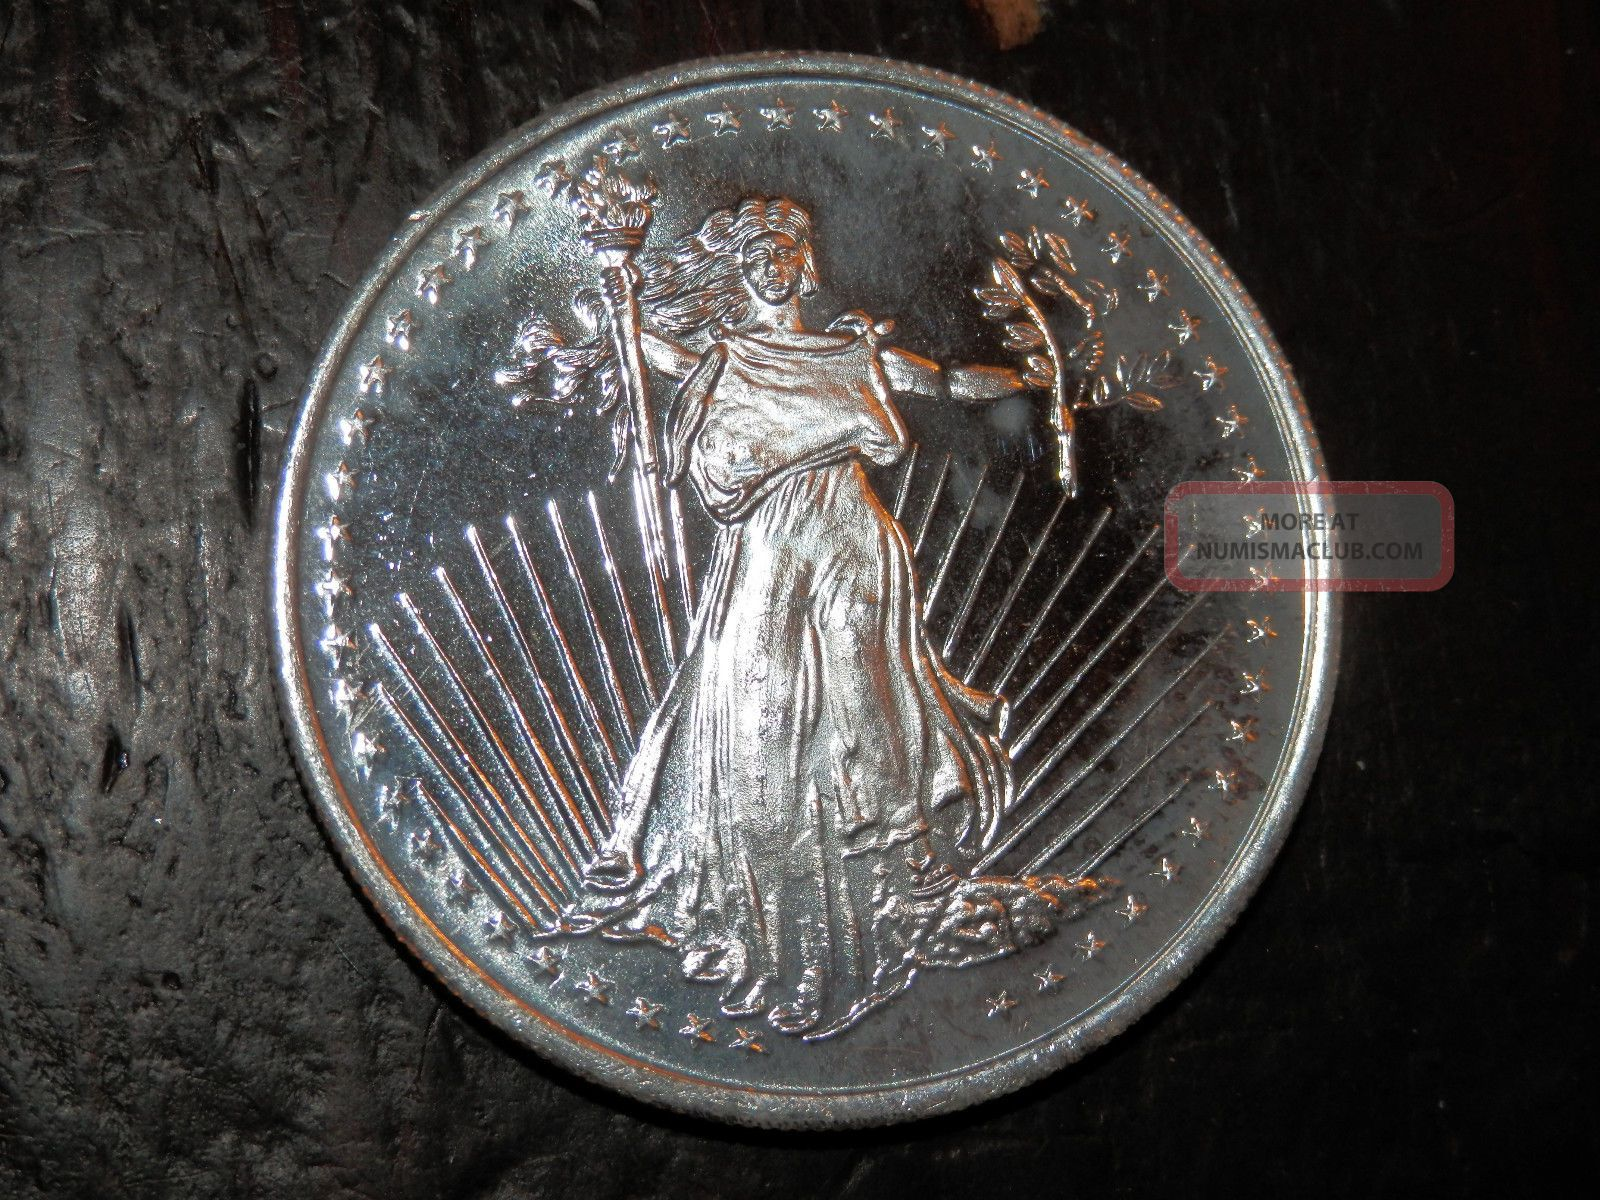 1 Troy Ounce Of 999 Silver Round From Silvertowne